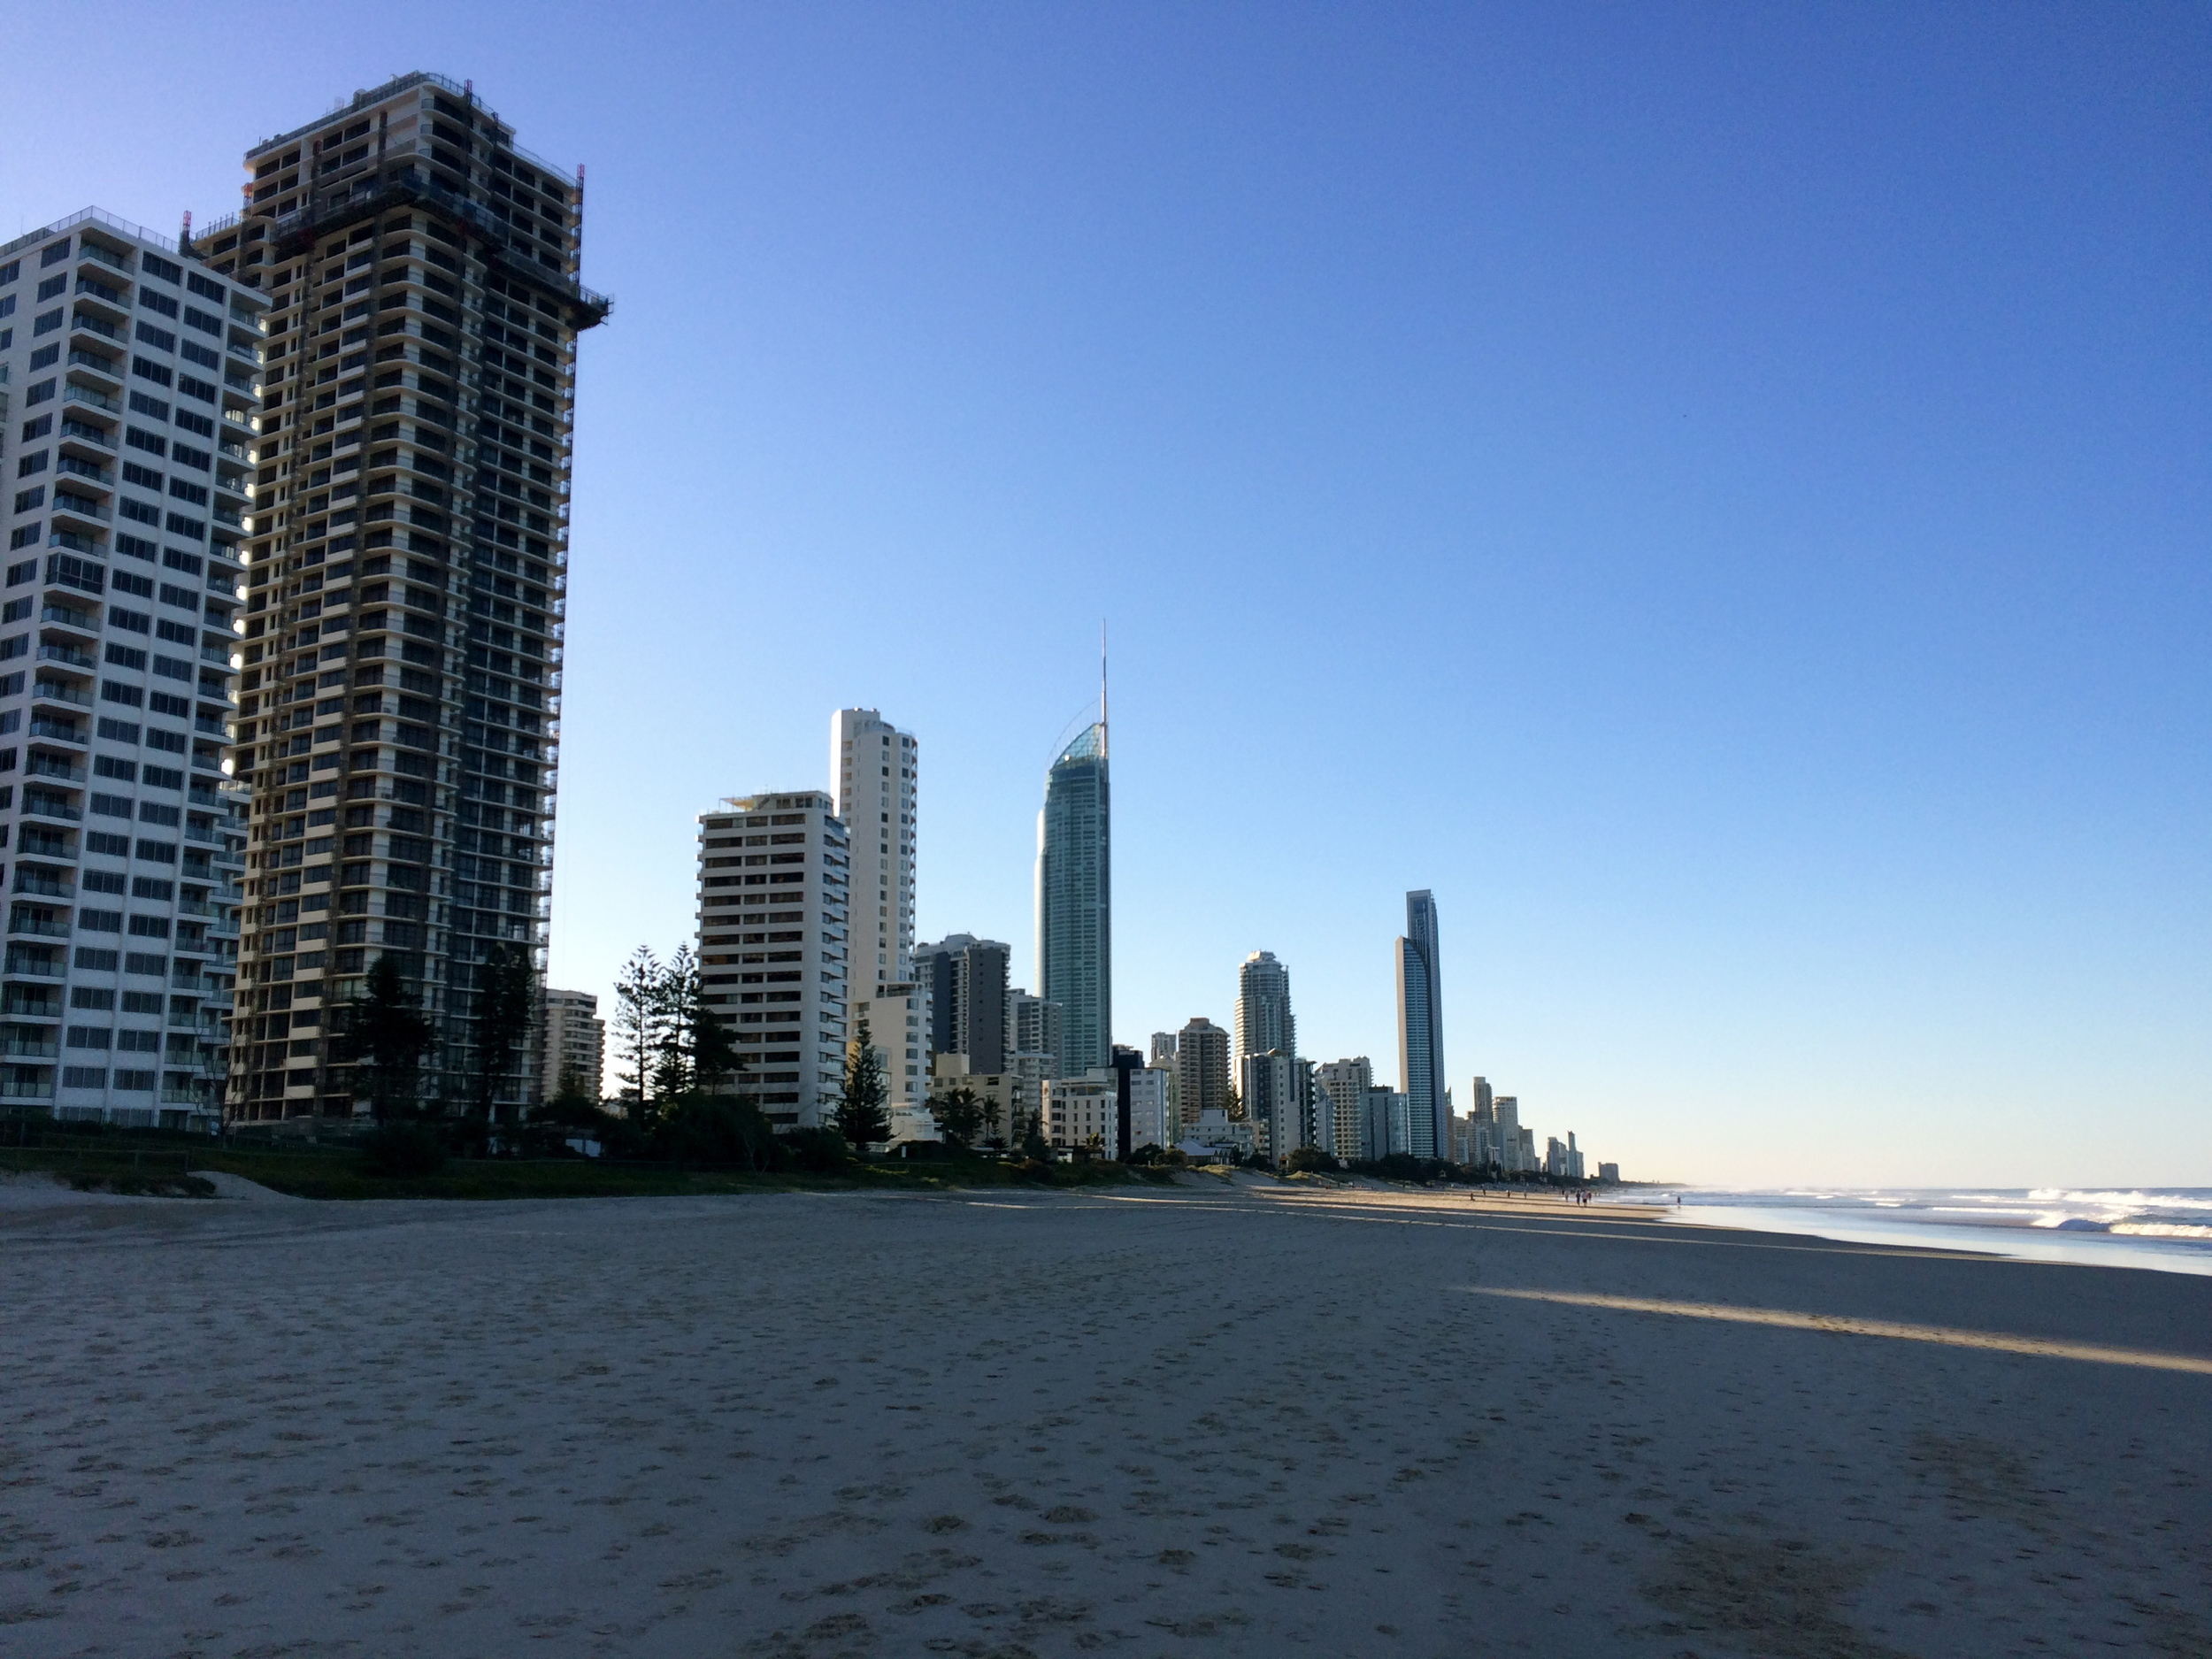 ◆ Broadbeach